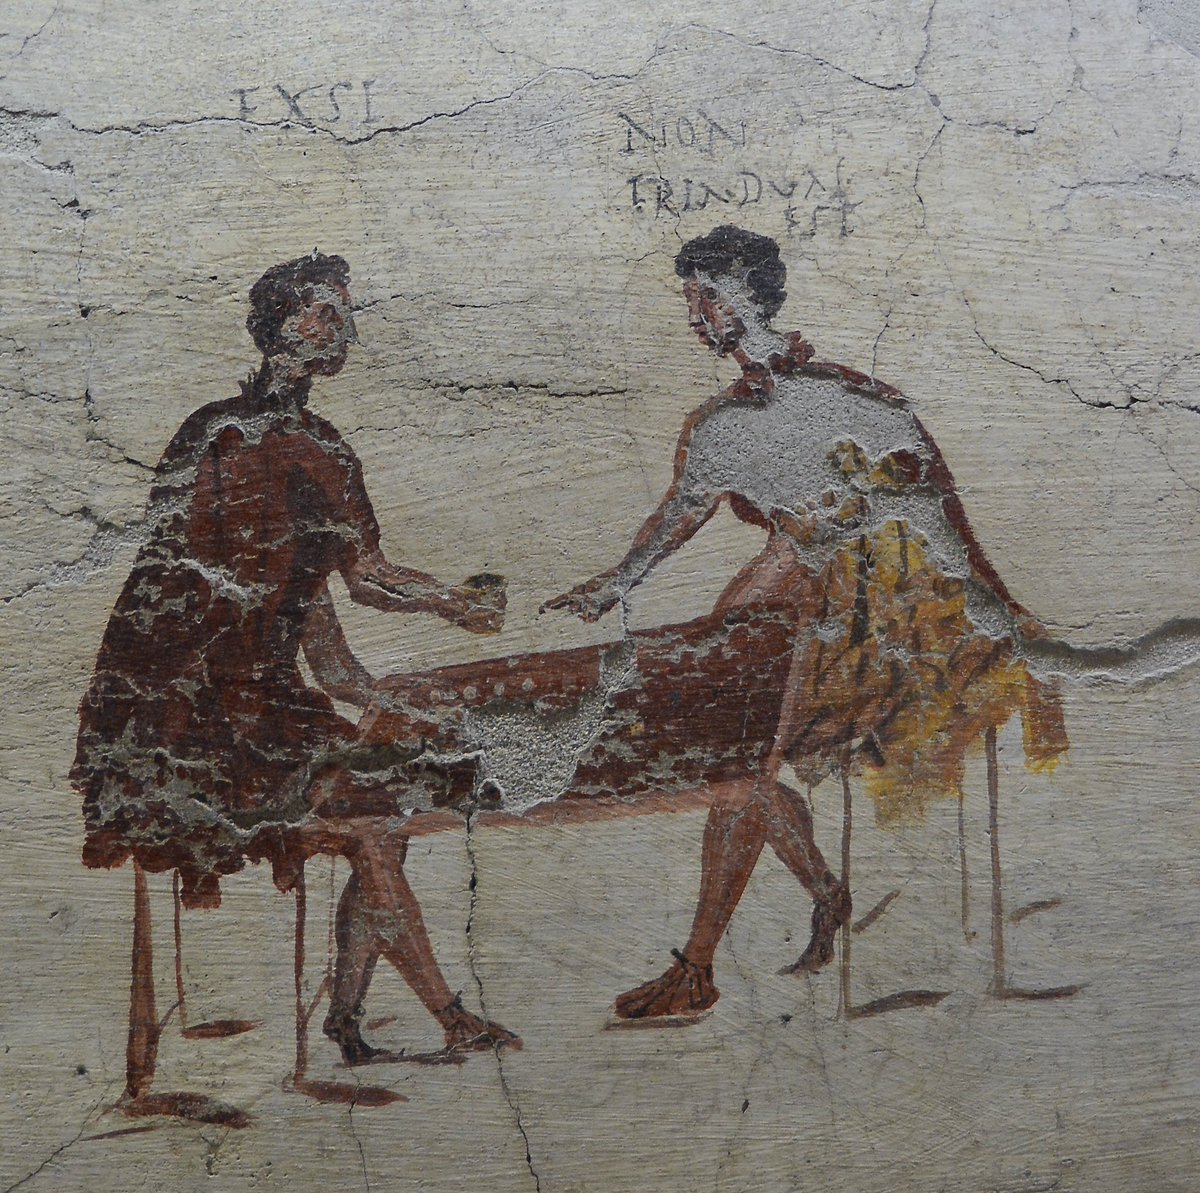 "Following on from @pompeii_sites #MuseumWeek #PlayMW tweet, I recently saw this fresco in Naples and the written captions above the Roman gamers are delightful: one man exclaims ""I've got it"" and the other retorts ""it's a 2 not a 3"".   https:// twitter.com/pompeii_sites/ status/1128560837273300992?s=21   … <br>http://pic.twitter.com/6pJwAxVyEh"